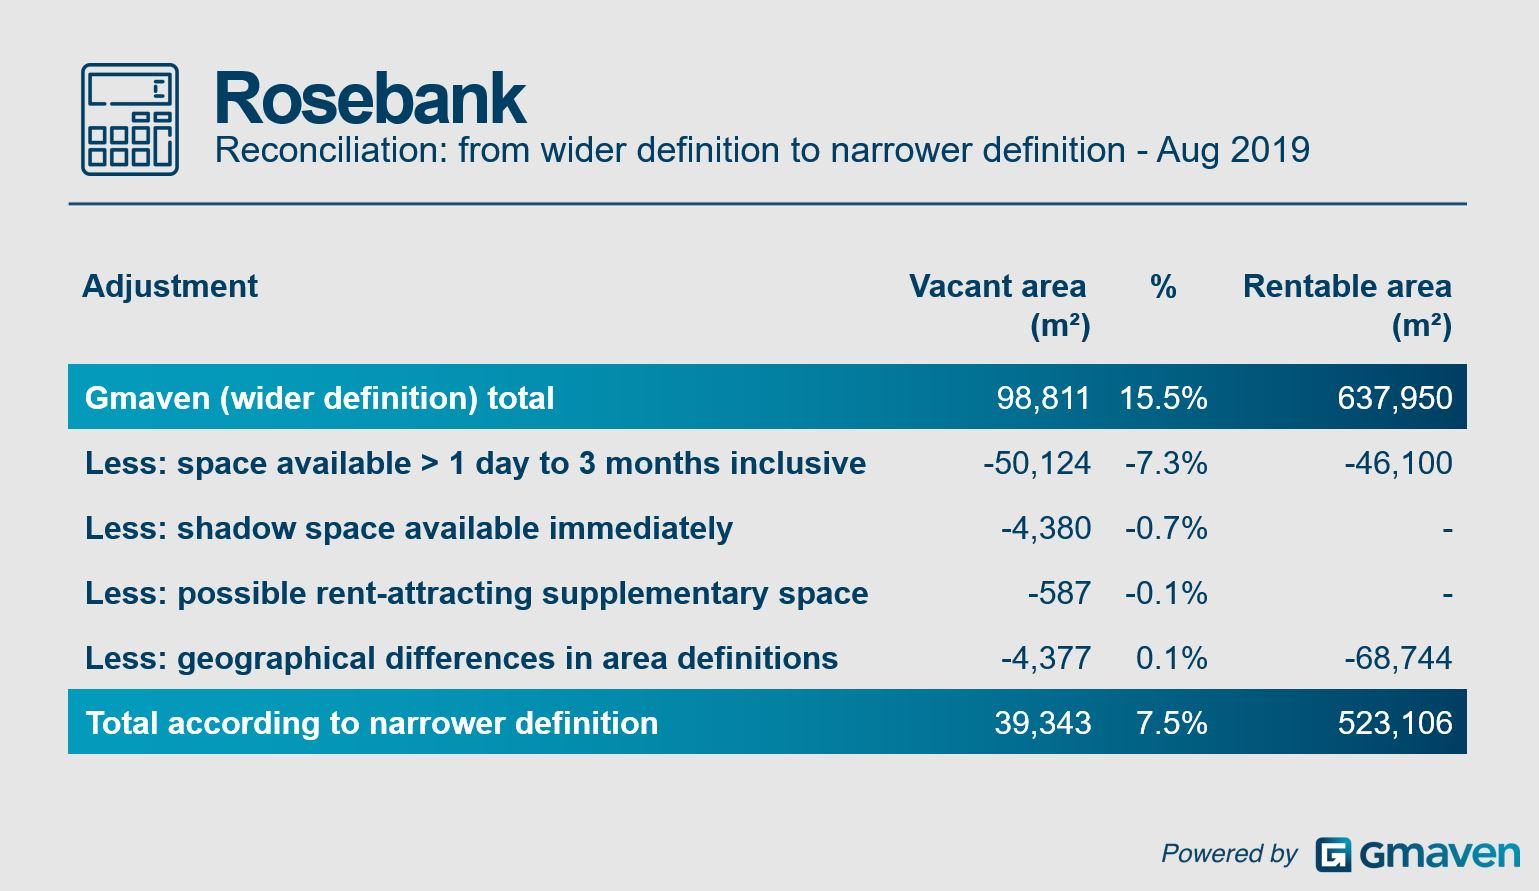 Rosebank office vacancy definition